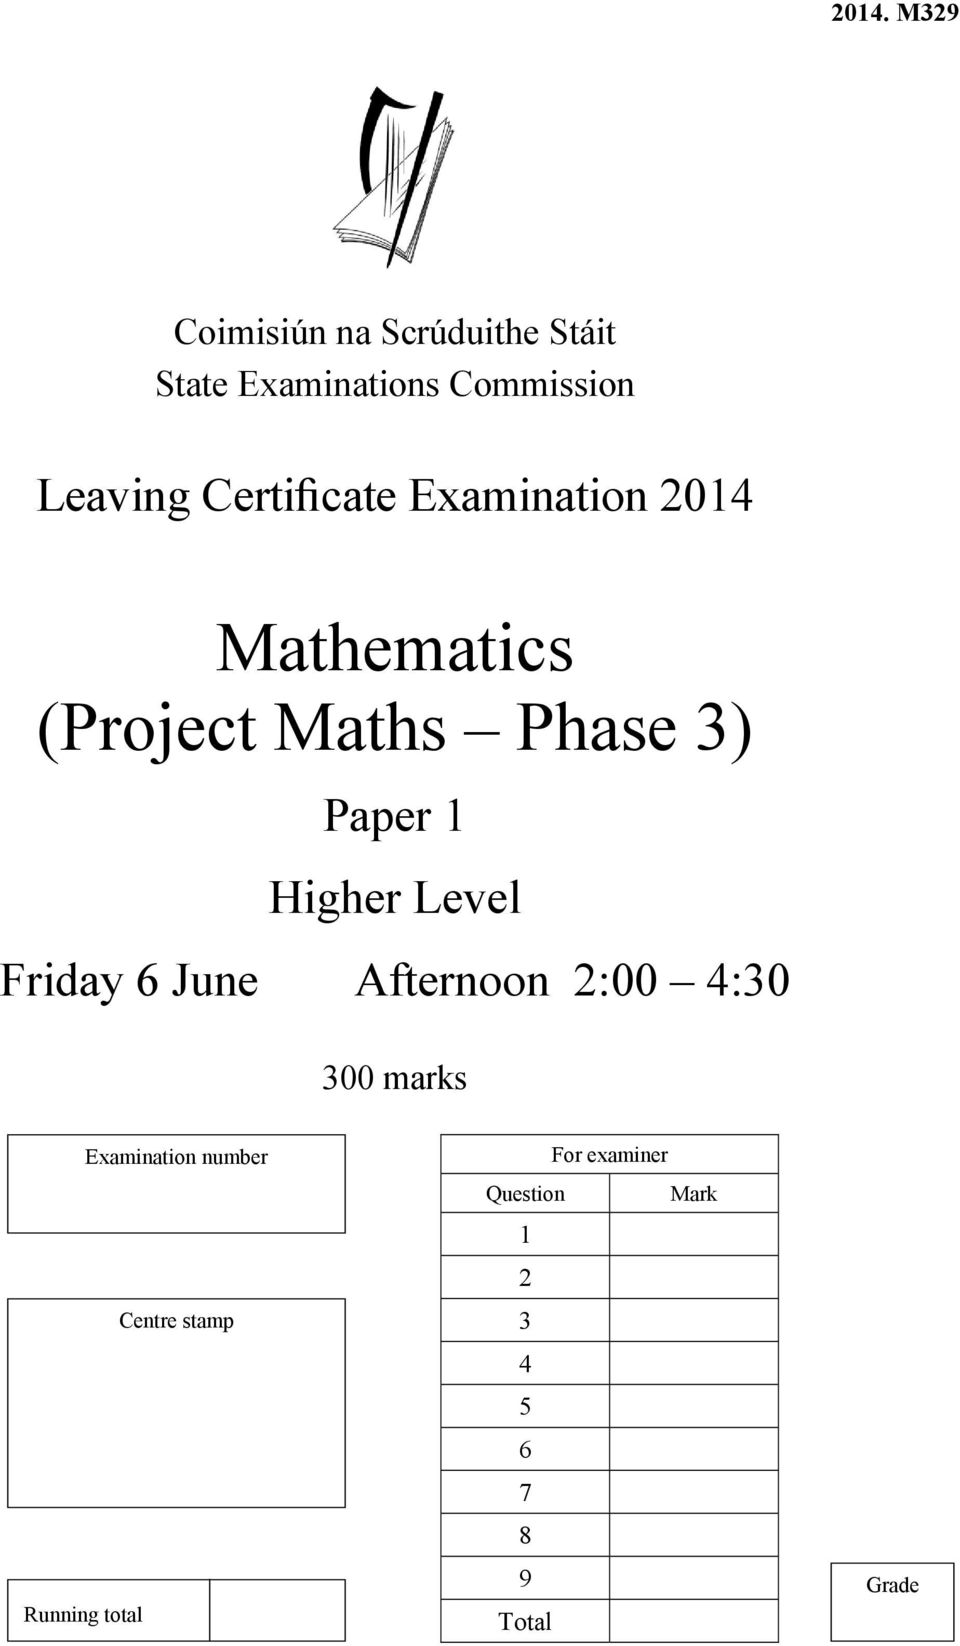 Paper 1 Higher Level Friday 6 June Afternoon 2:00 4:30 300 marks Running